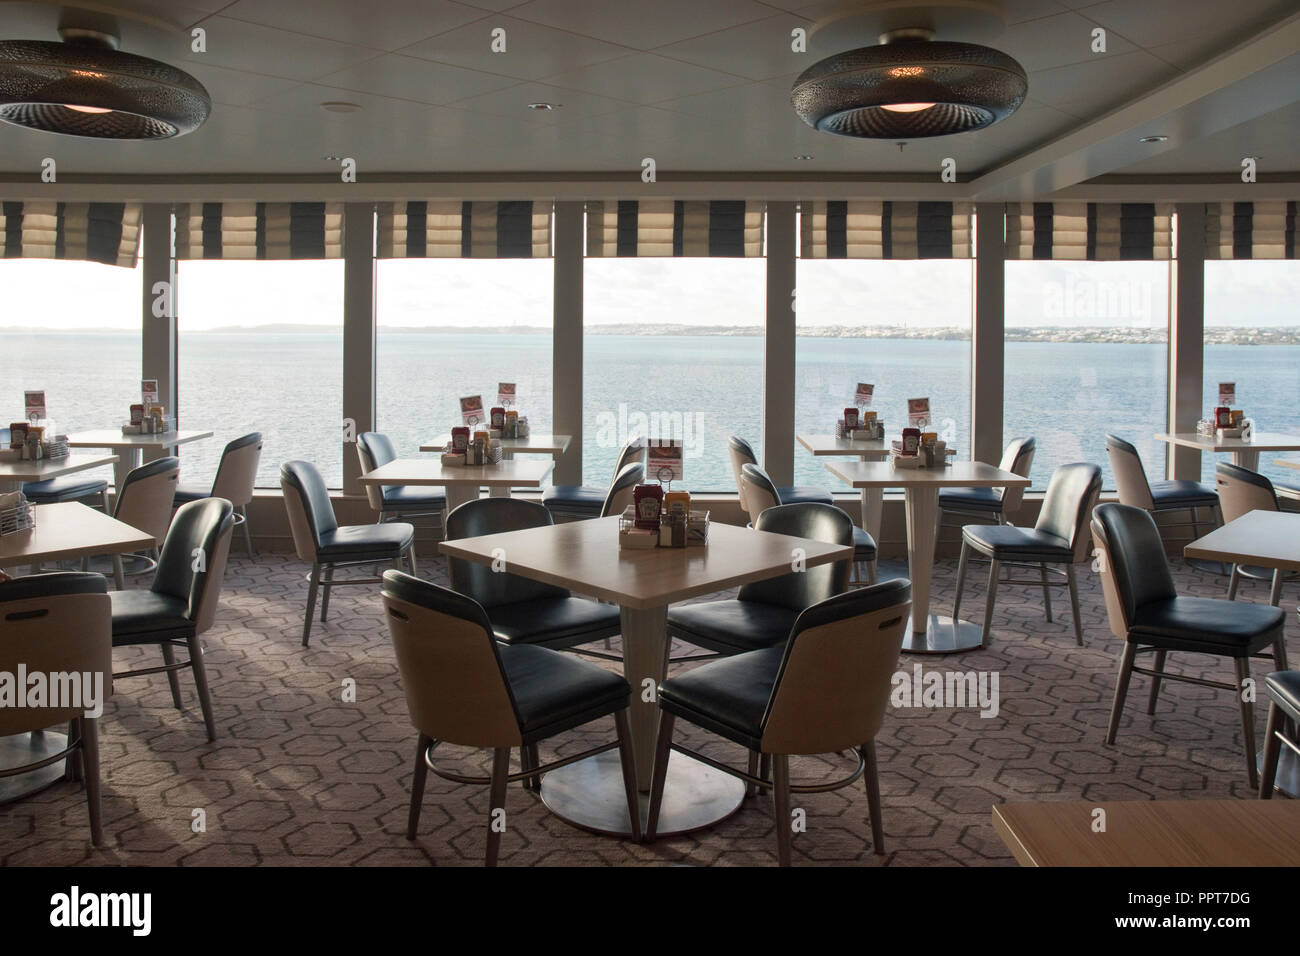 Tables and chairs in the cafeteria of the Norwegian Breakaway cruise ship at Bermuda. - Stock Image